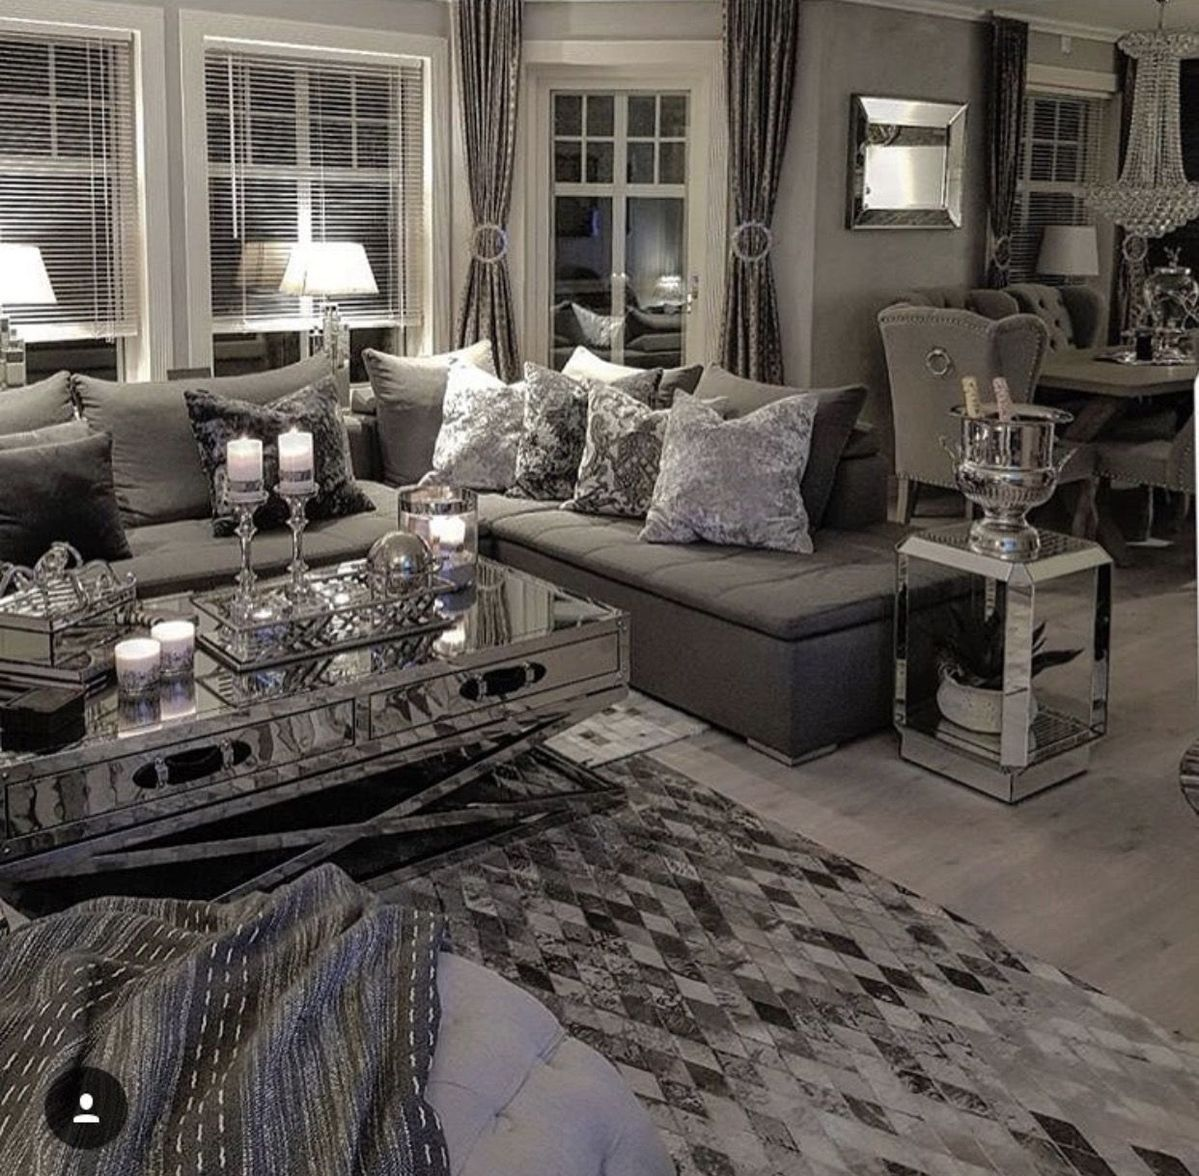 Modern Glam Living Room Decorating Ideas 19: Tan Bedroom Beauty: Conservative But Fun Bedrooms